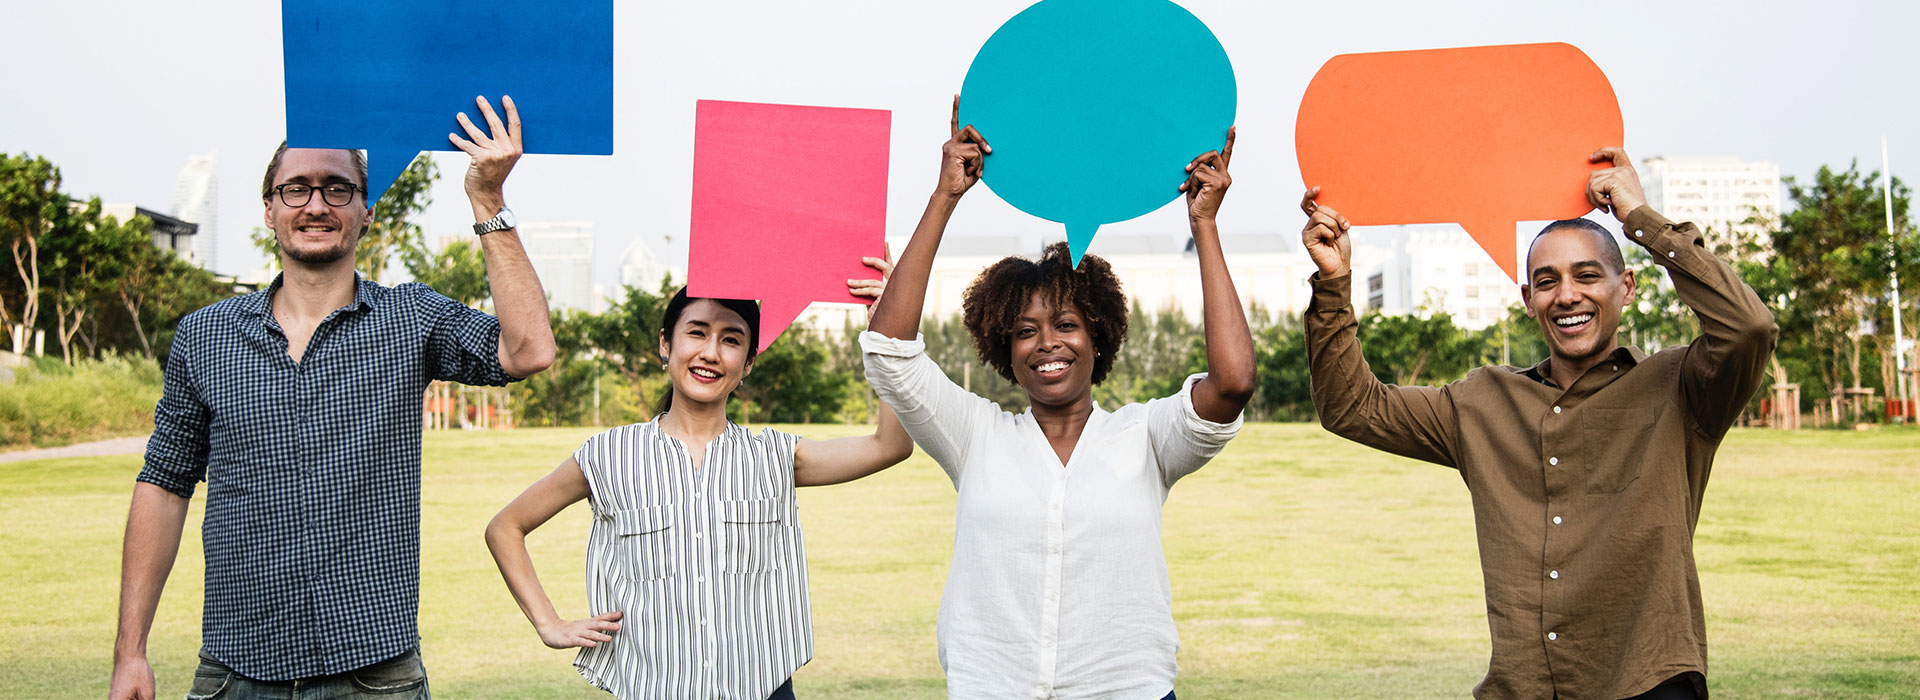 Four diverse individuals standing next to each other, smiling and holding coloured speech bubbles above their heads.